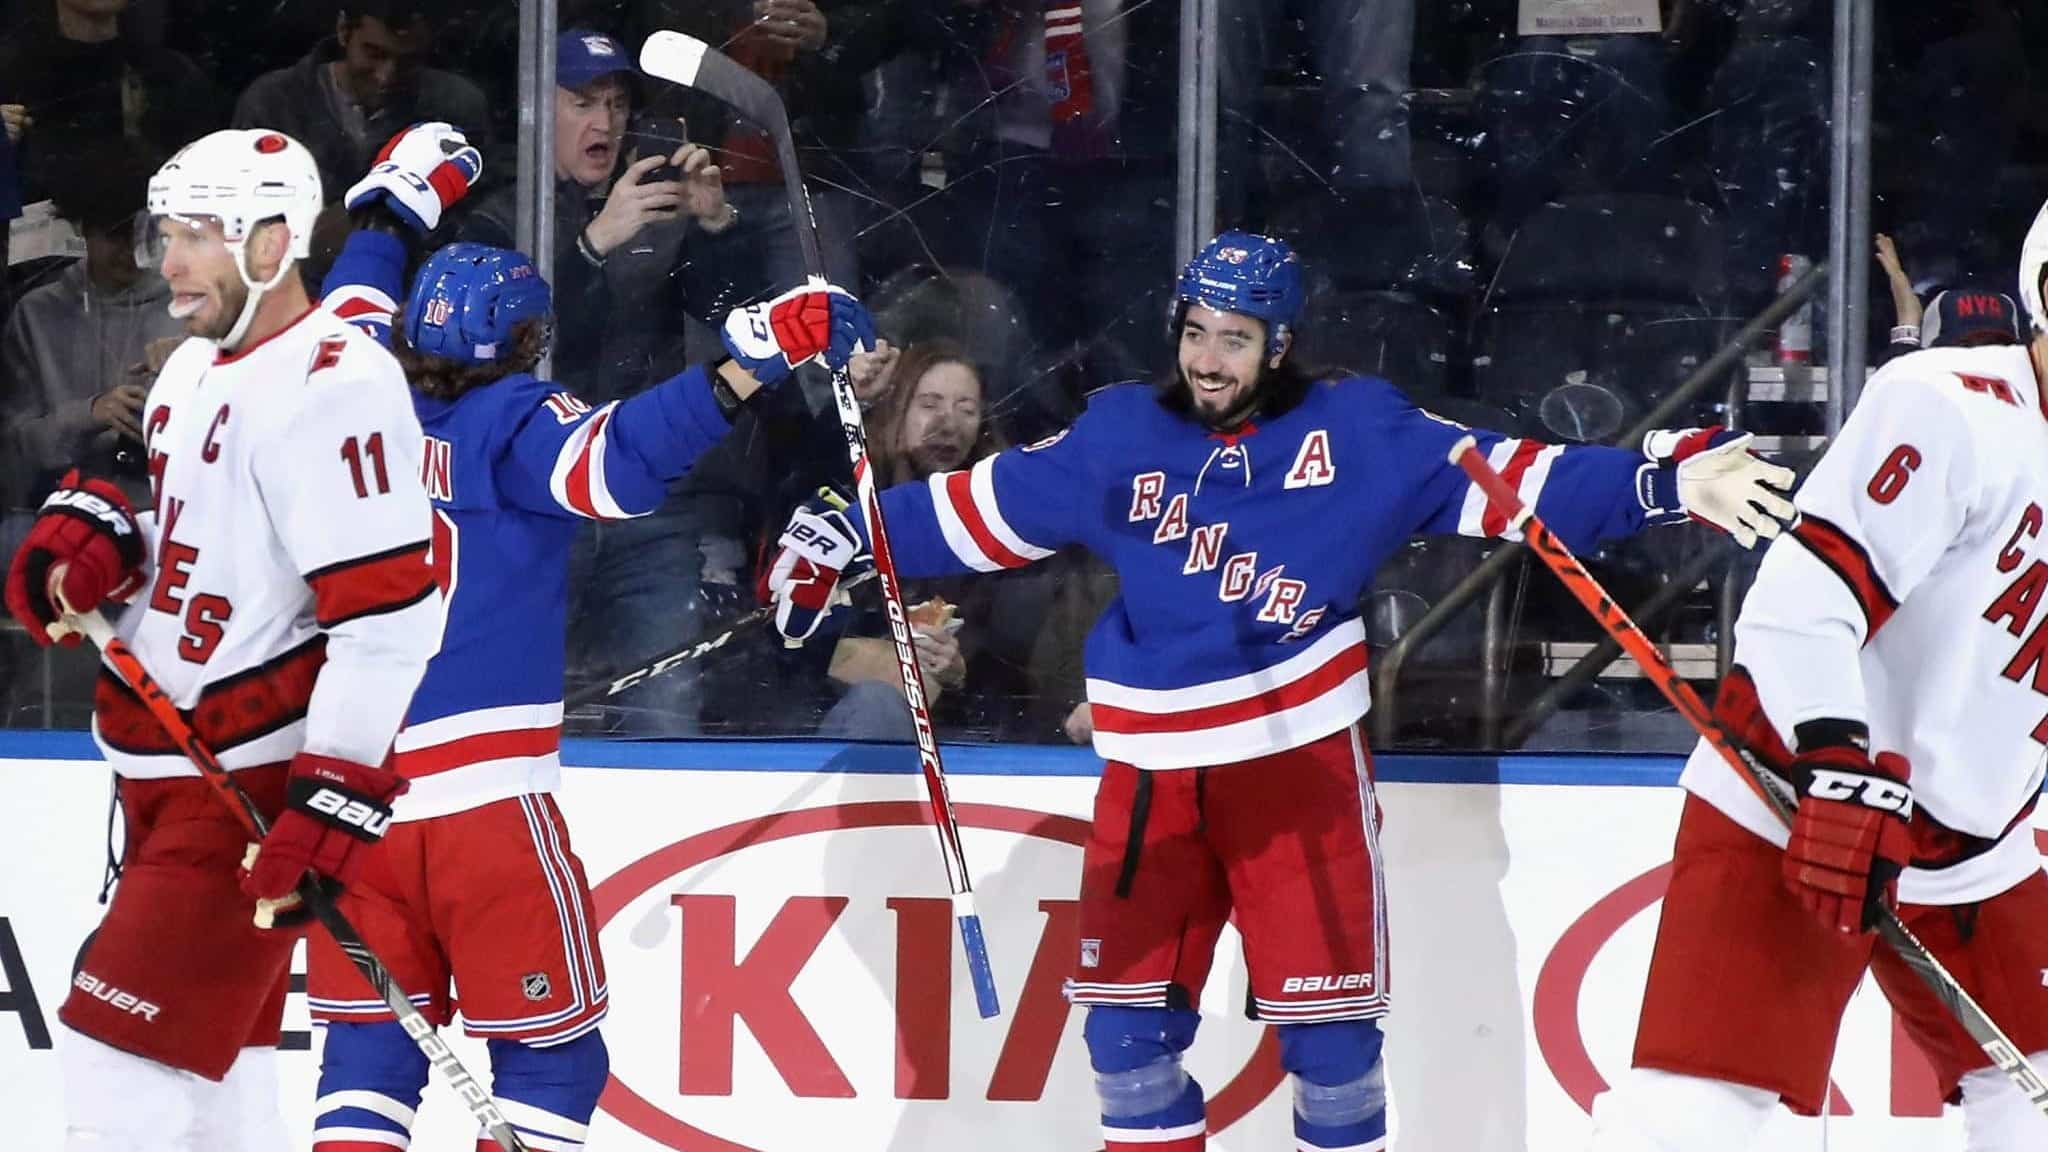 NHL Carolina Hurricanes Vs New York Rangers – 2020 Playoff Series Preview